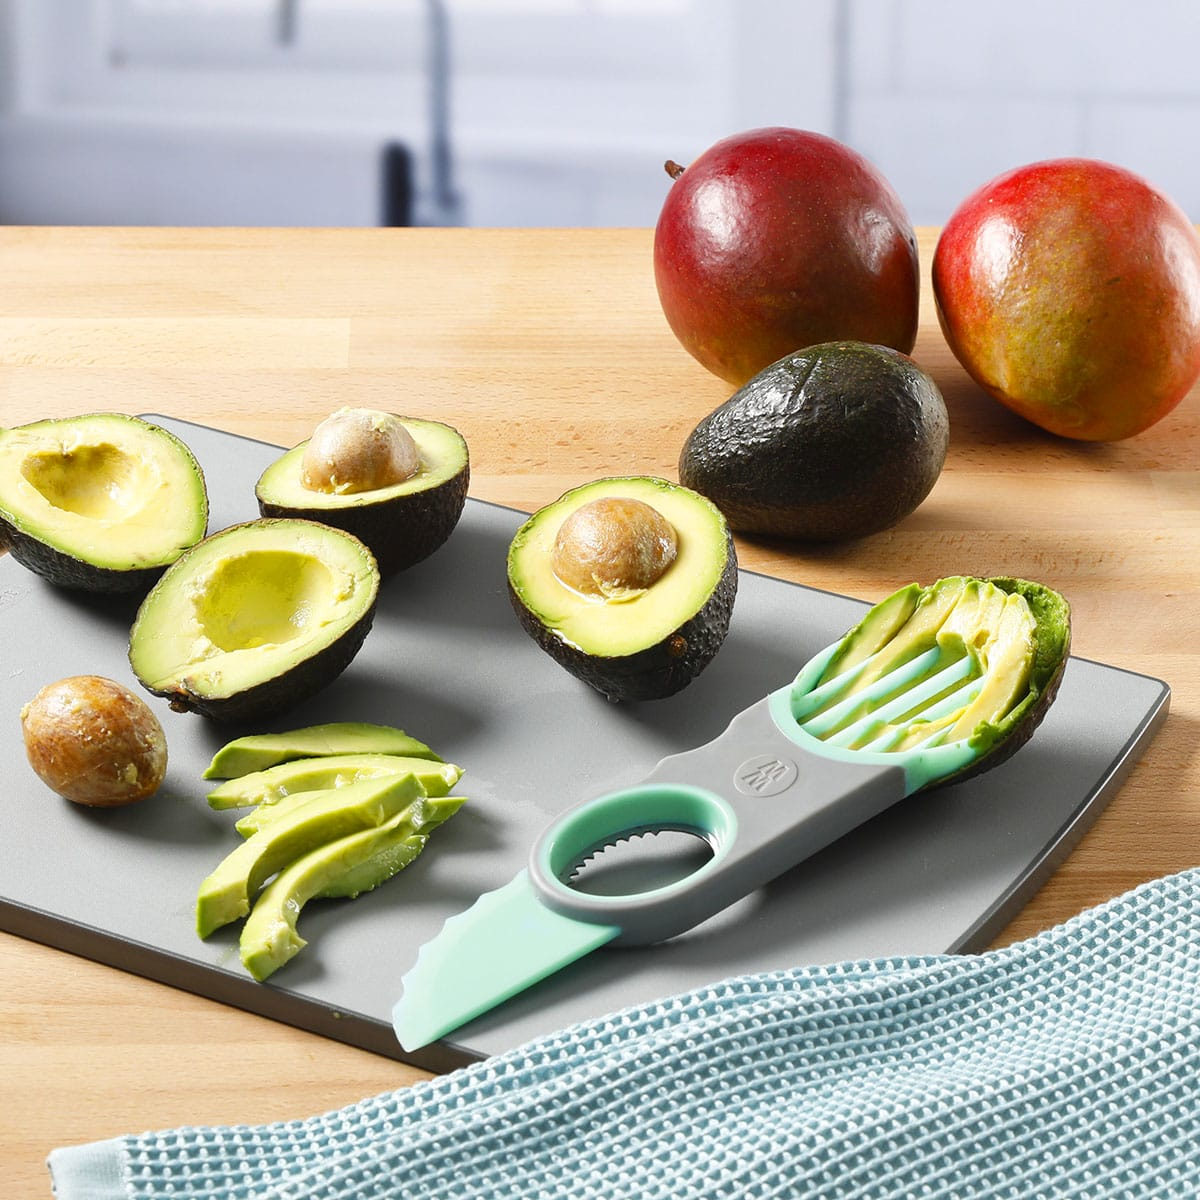 3-in-1 Avocado Tool - alternate view